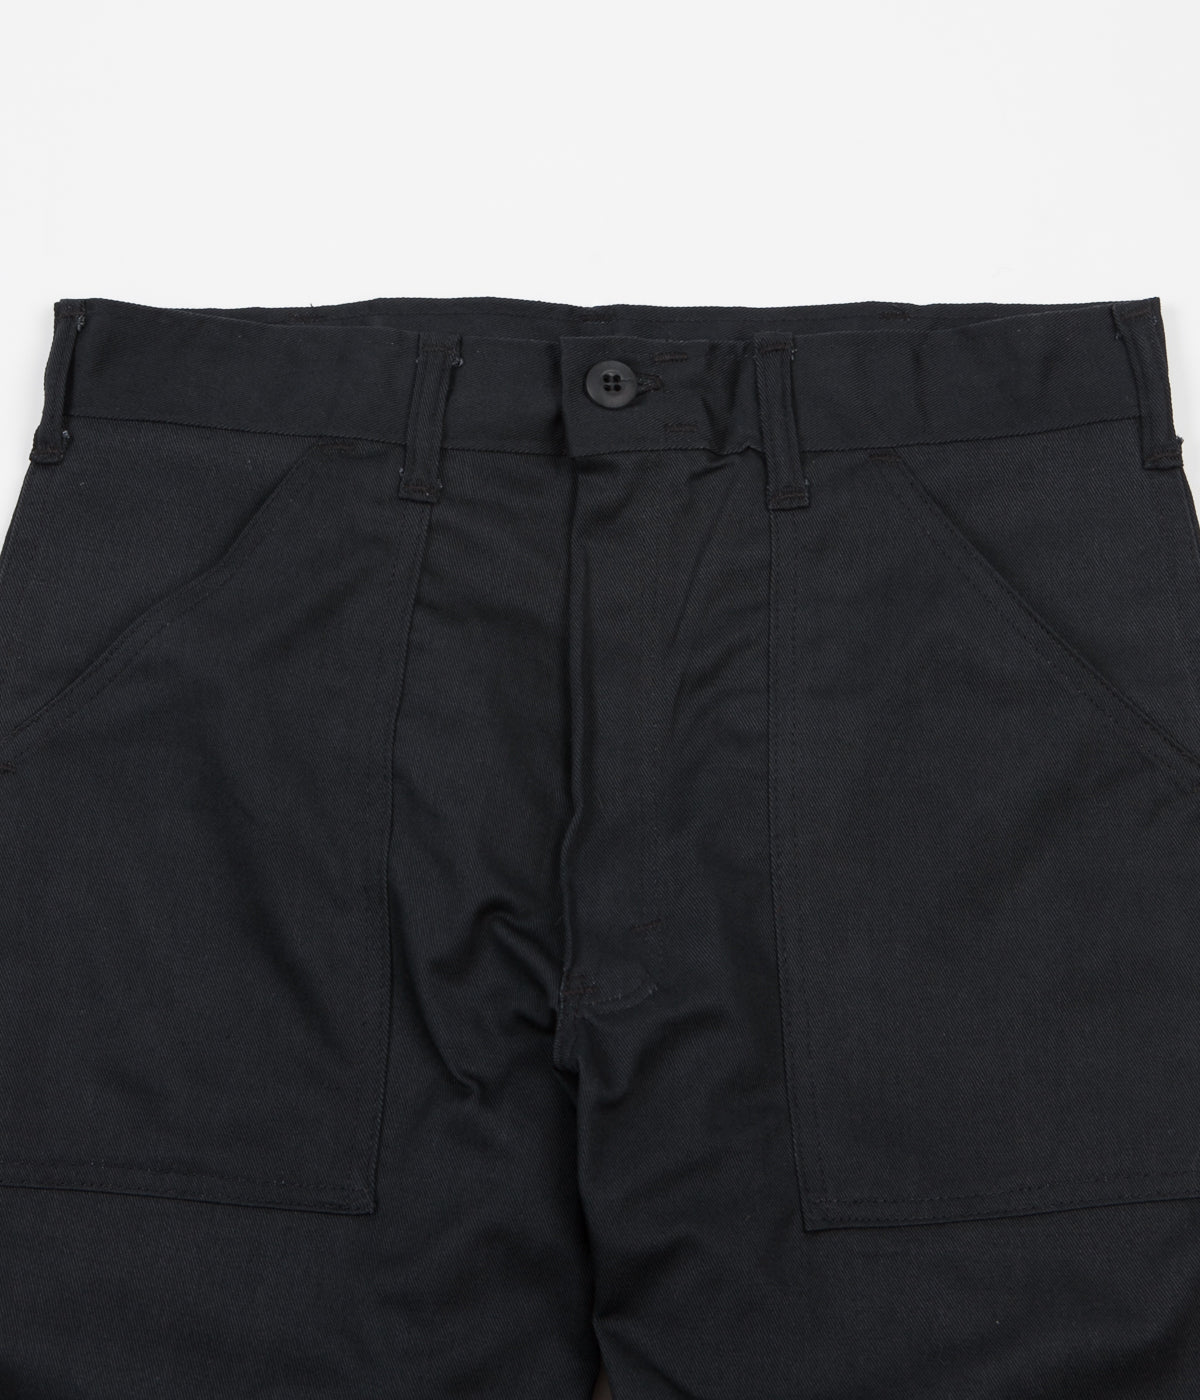 Stan Ray Original 107 4 Pocket Fatigue Trousers - Black